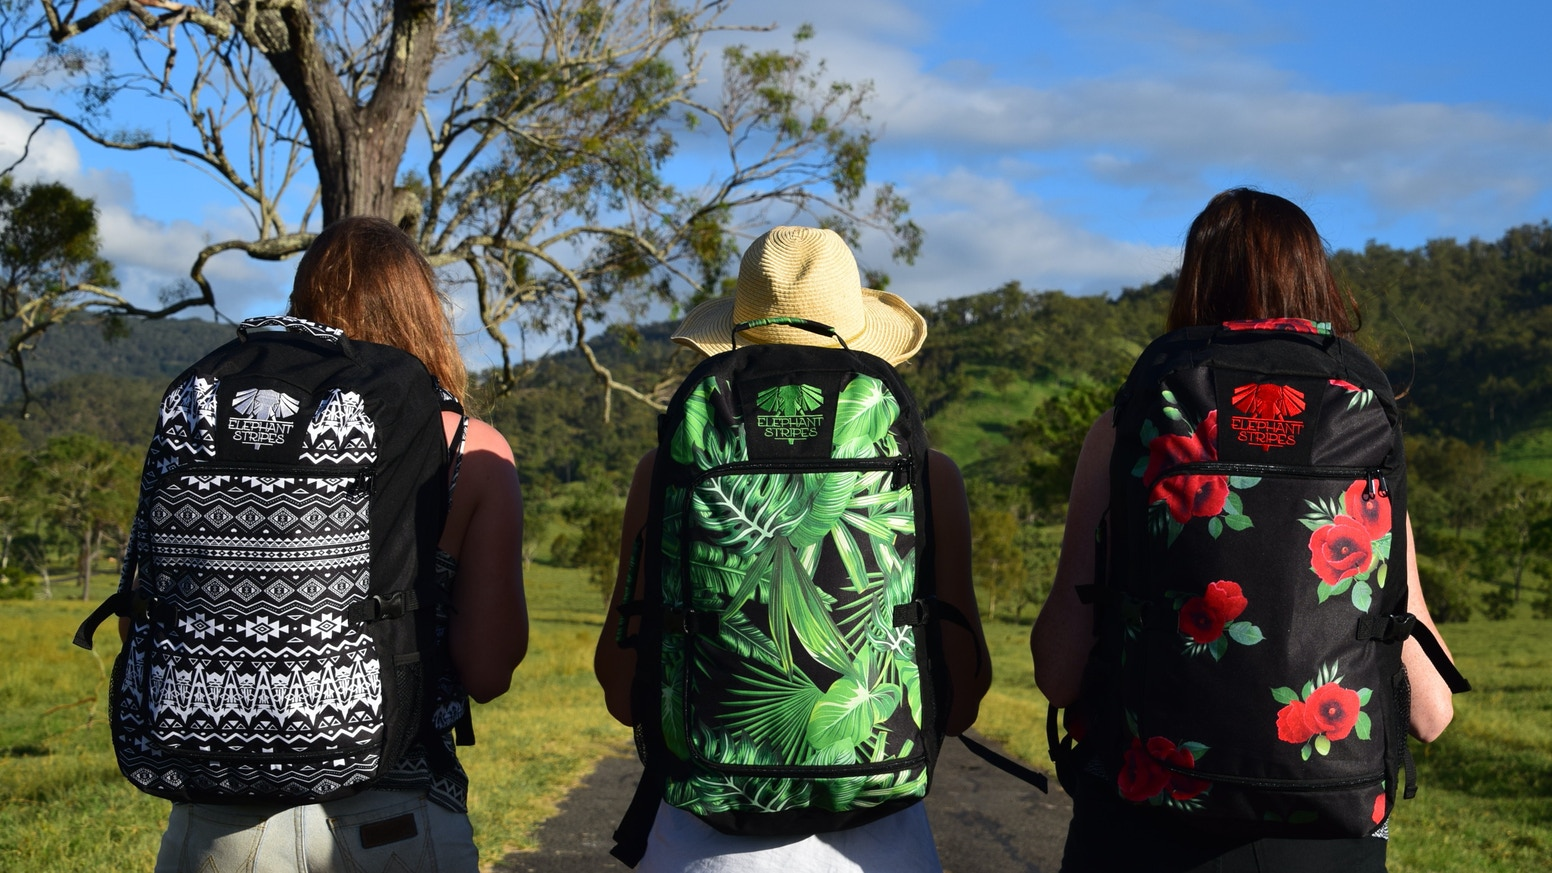 WE'RE NOW SELLING PRE-ORDERS AT www.elephantstripes.co.nz